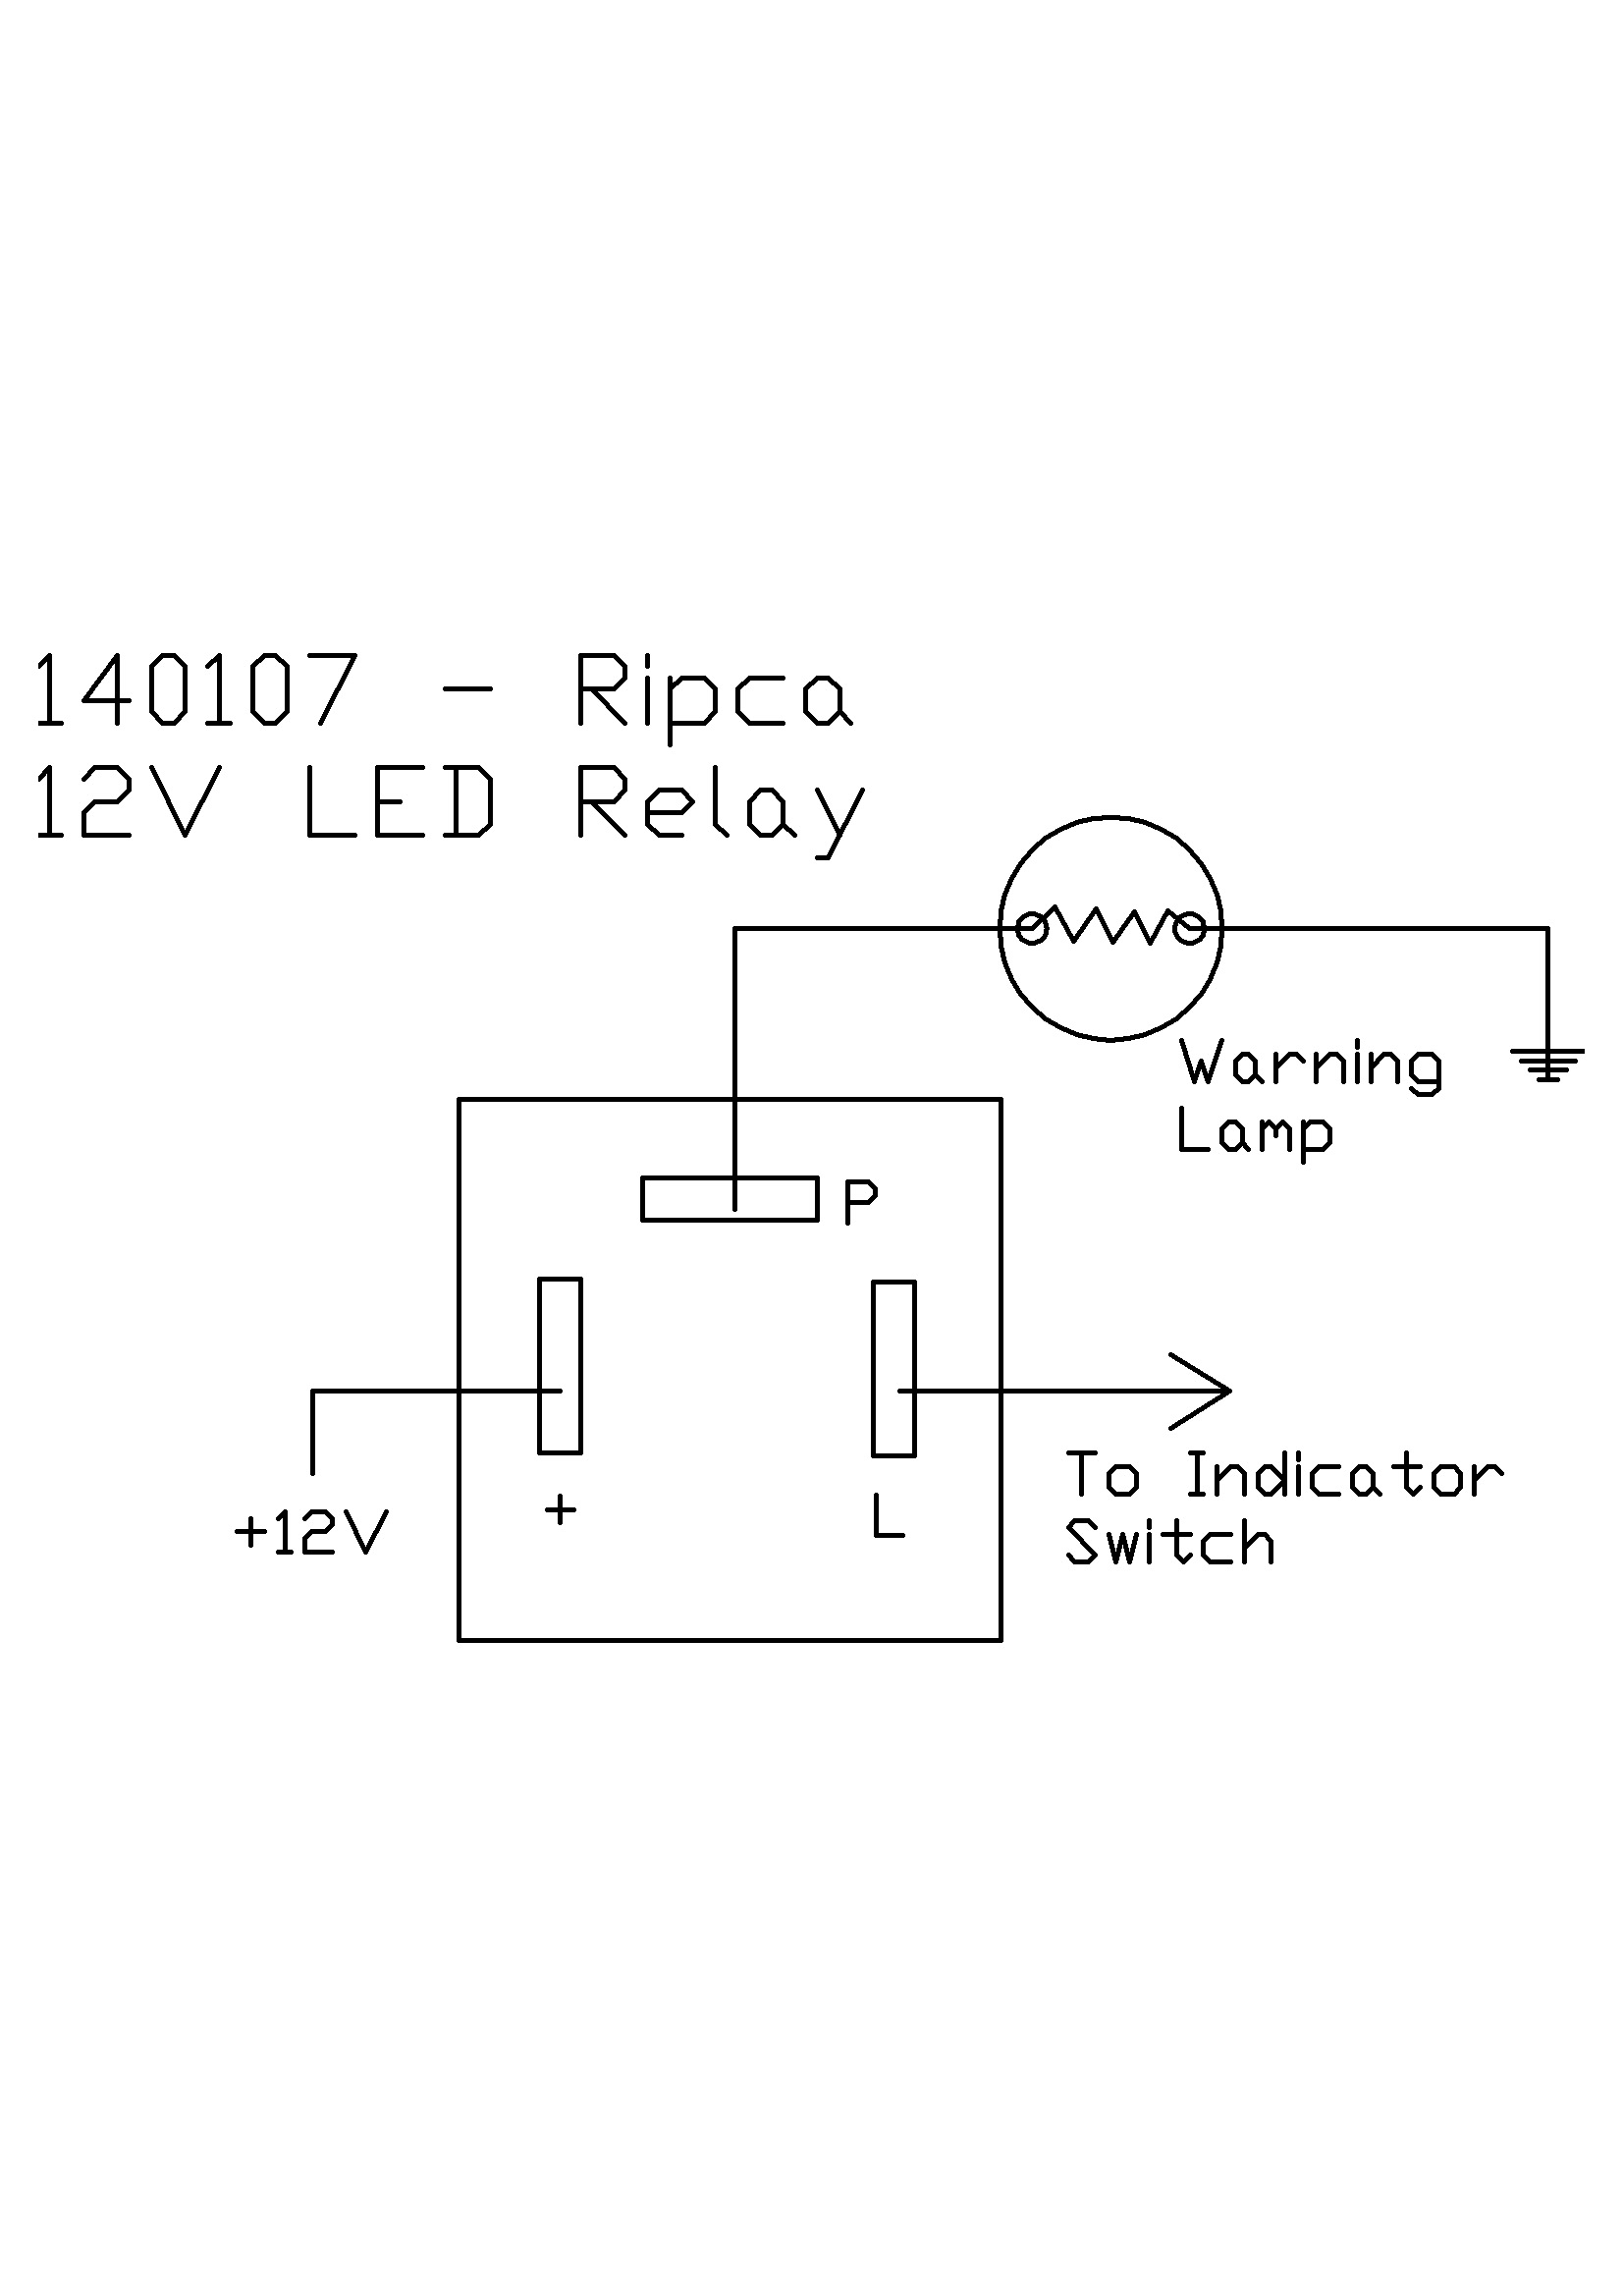 12 Volt Led Flasher Unit Wiring In Parallel Leds Downloads